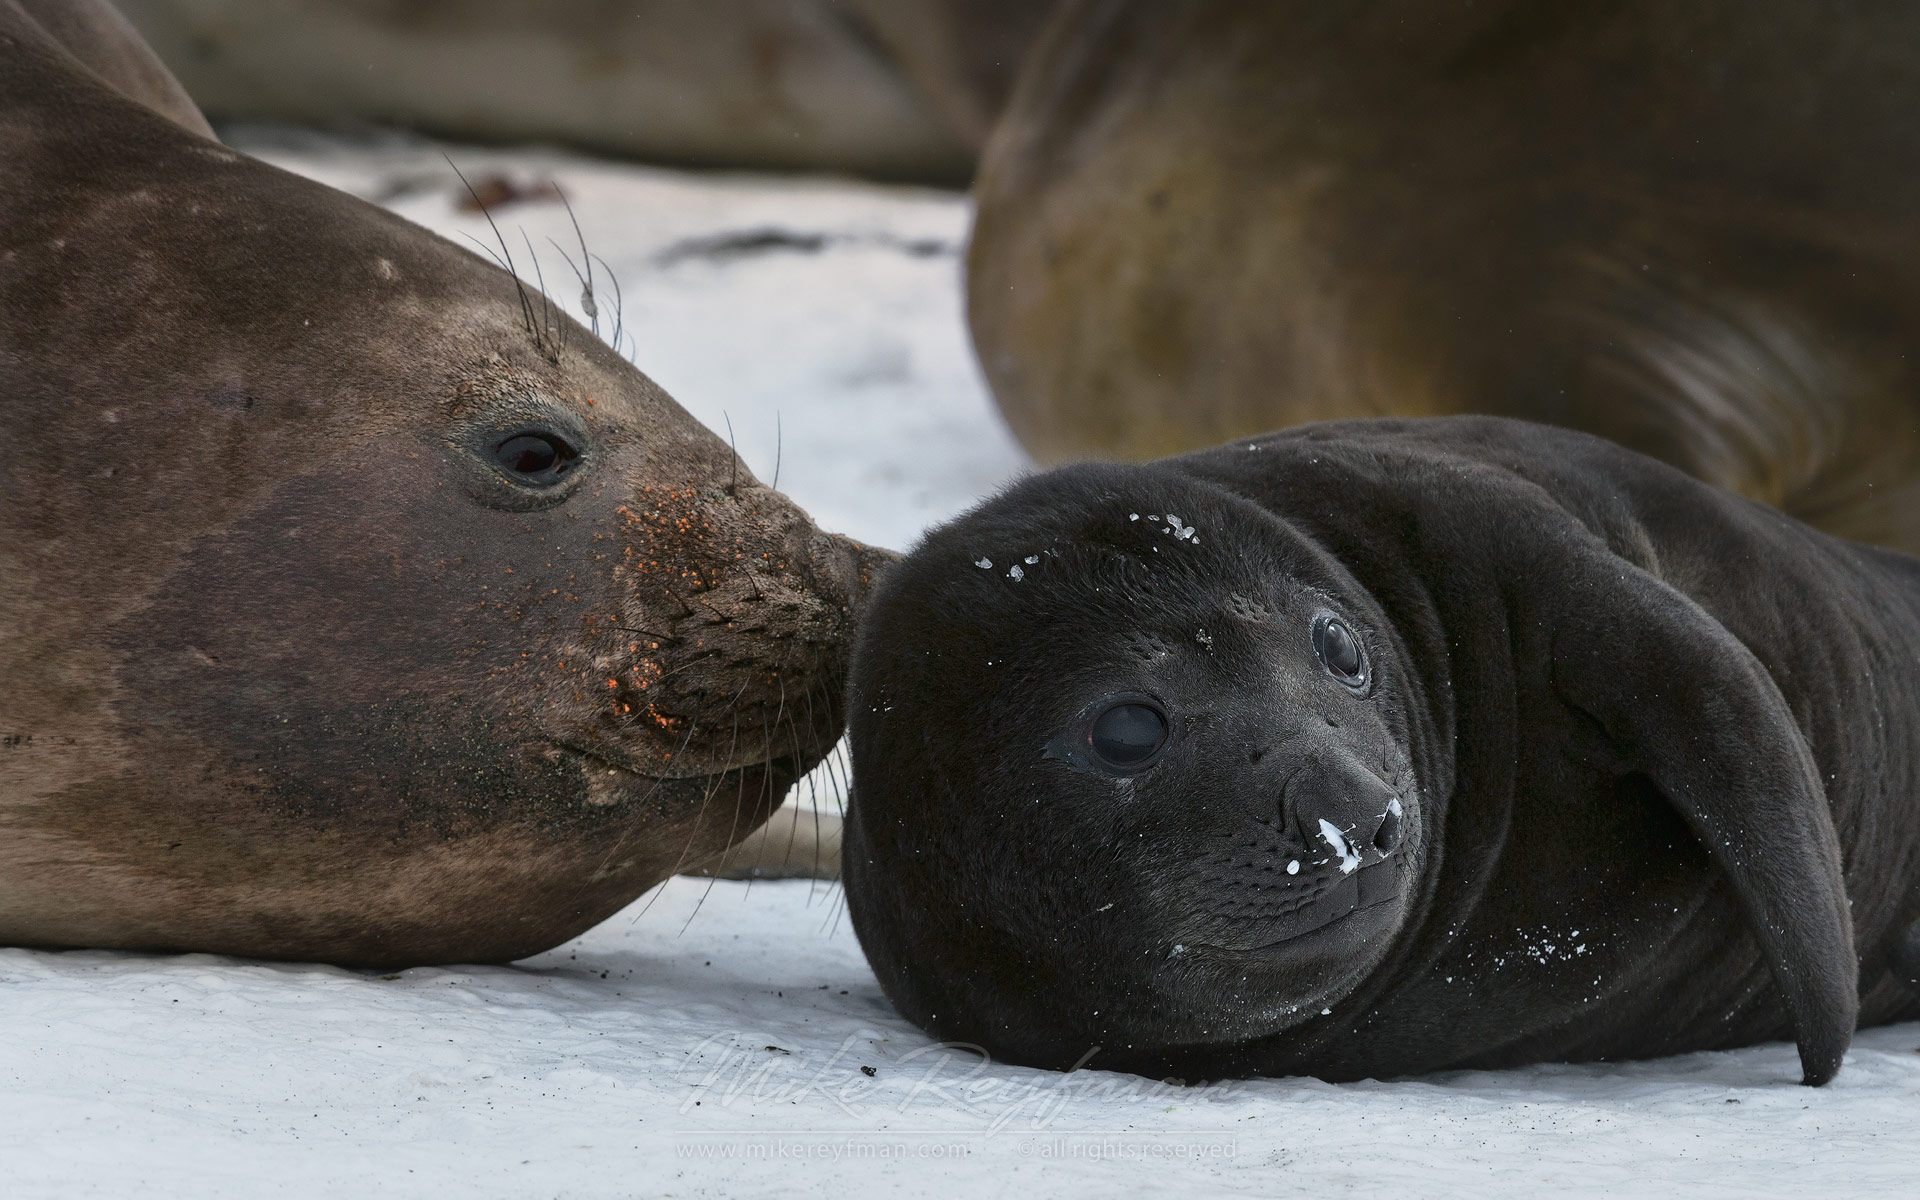 Newborn Southern Elephant Seal (Mirounga leonina) pup. South Georgia, Sub-Antarctic - Southern-Elephant-Seals-Fur-Seals-South-Georgia-Sub-Antarctic - Mike Reyfman Photography